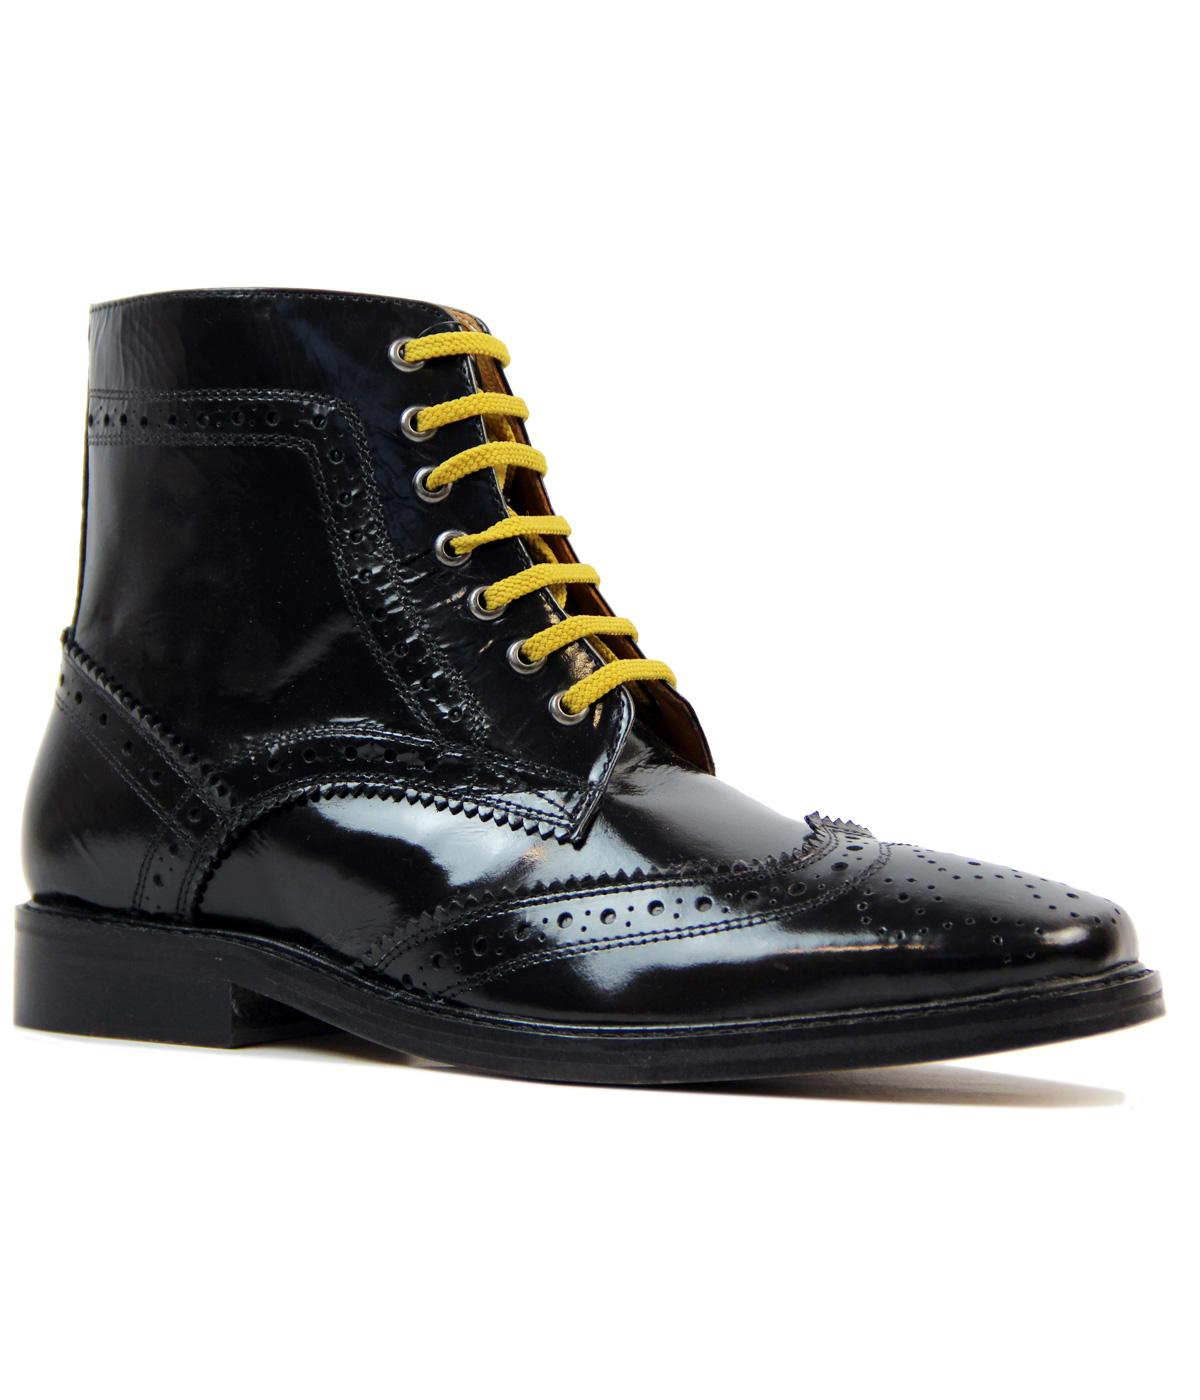 Landslide DELICIOUS  JUNCTION Brogue Bovver Boots